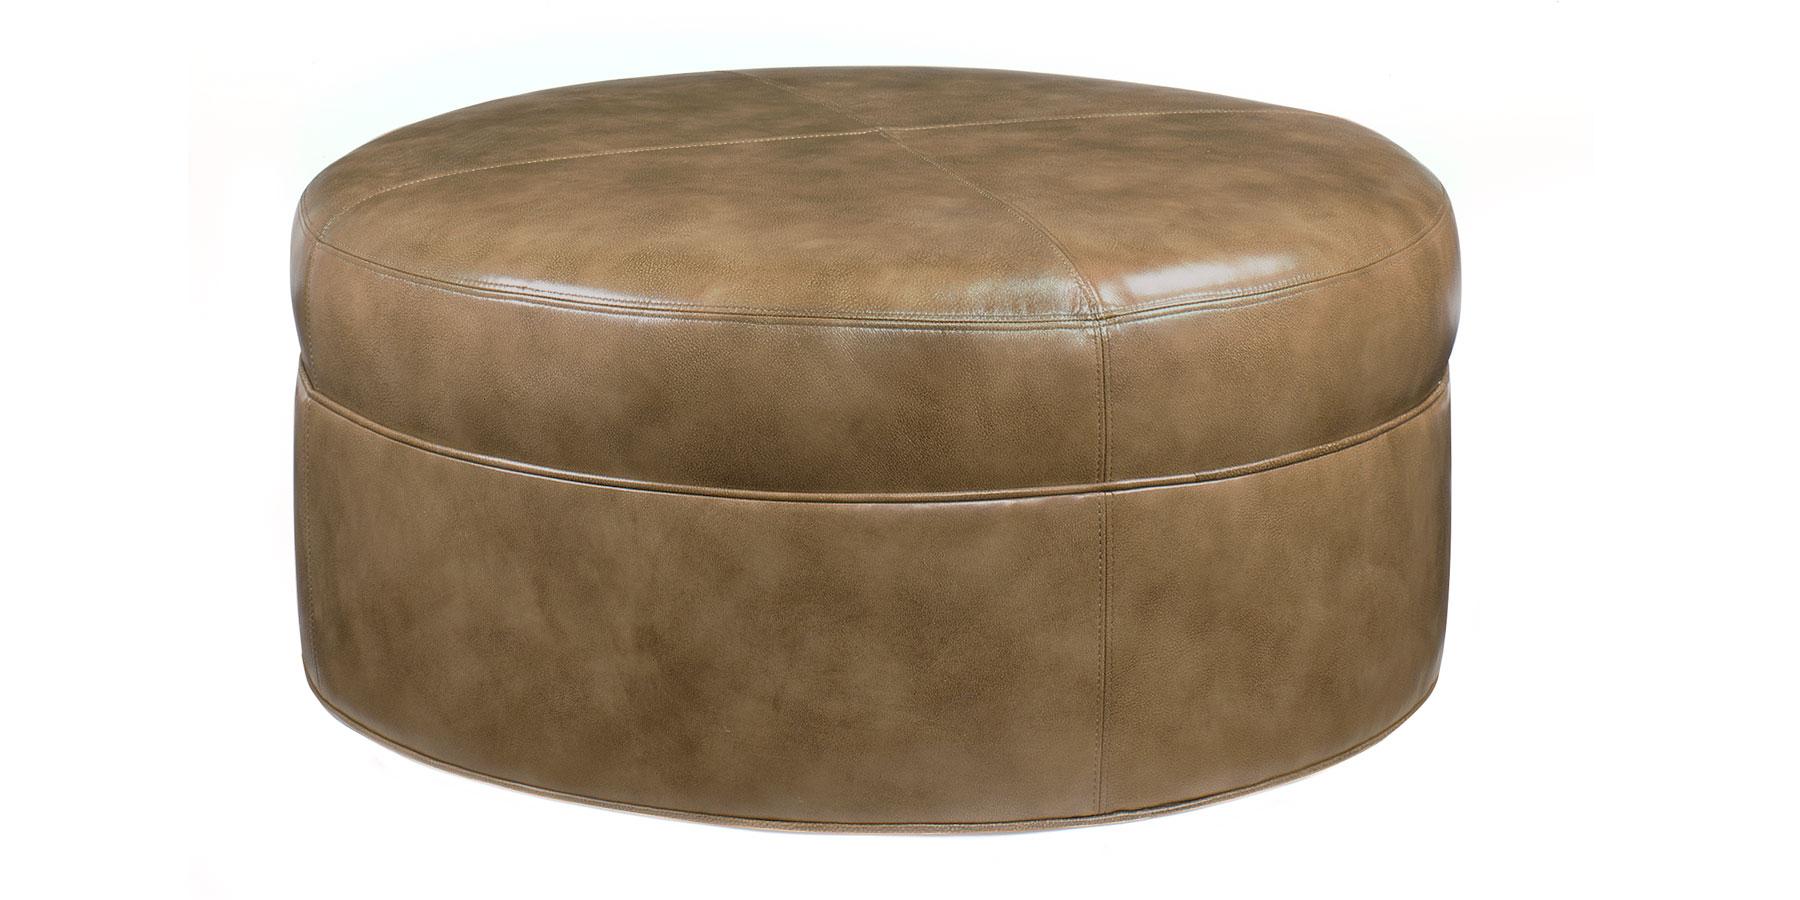 Large Round Leather Drum Ottoman Club Furniture: round leather ottoman coffee table